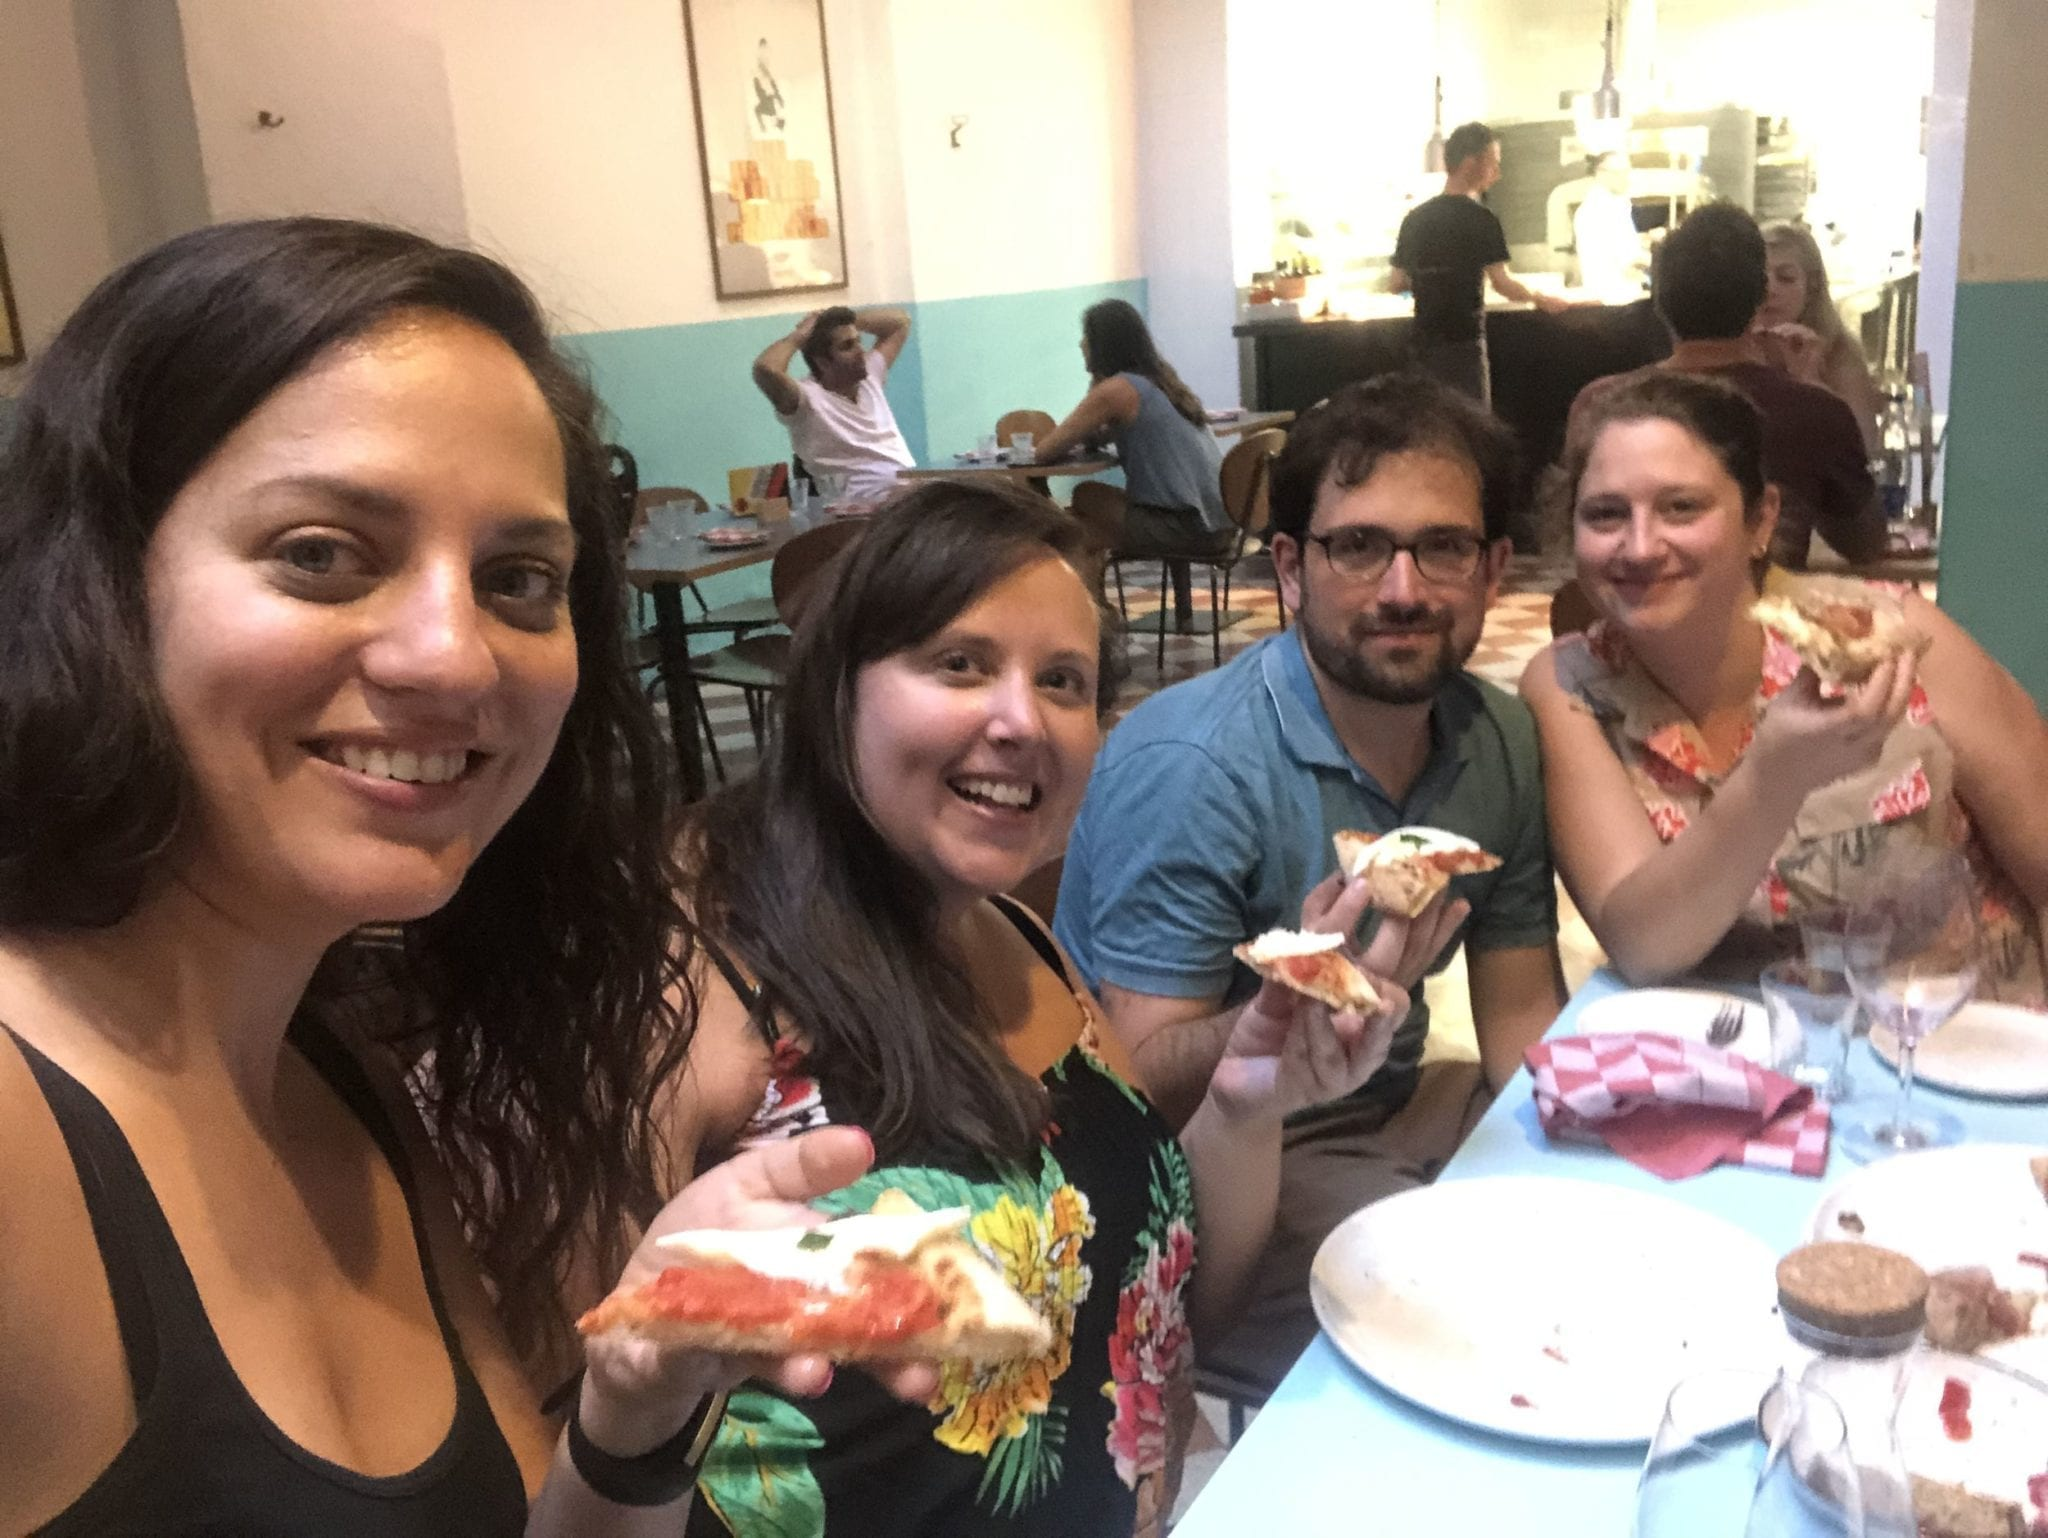 Kate and her friends Cailin, Mike, and Steph pose for a selfie at a pizzeria in Bologna, each holding up a slice of pizza.